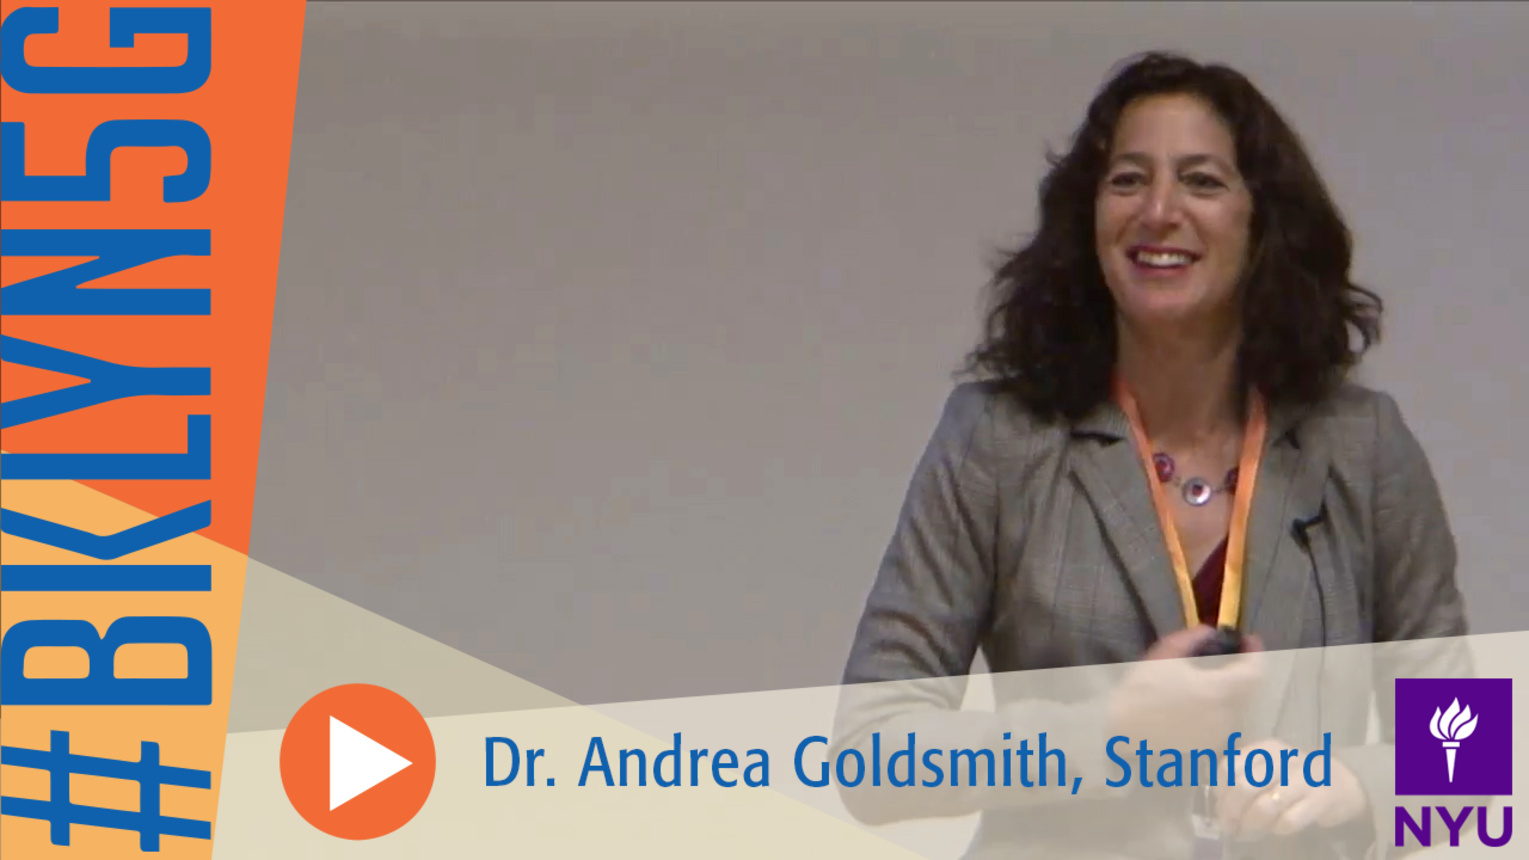 The Brooklyn 5G Summit: Dr. Andrea Goldsmith of Stanford University